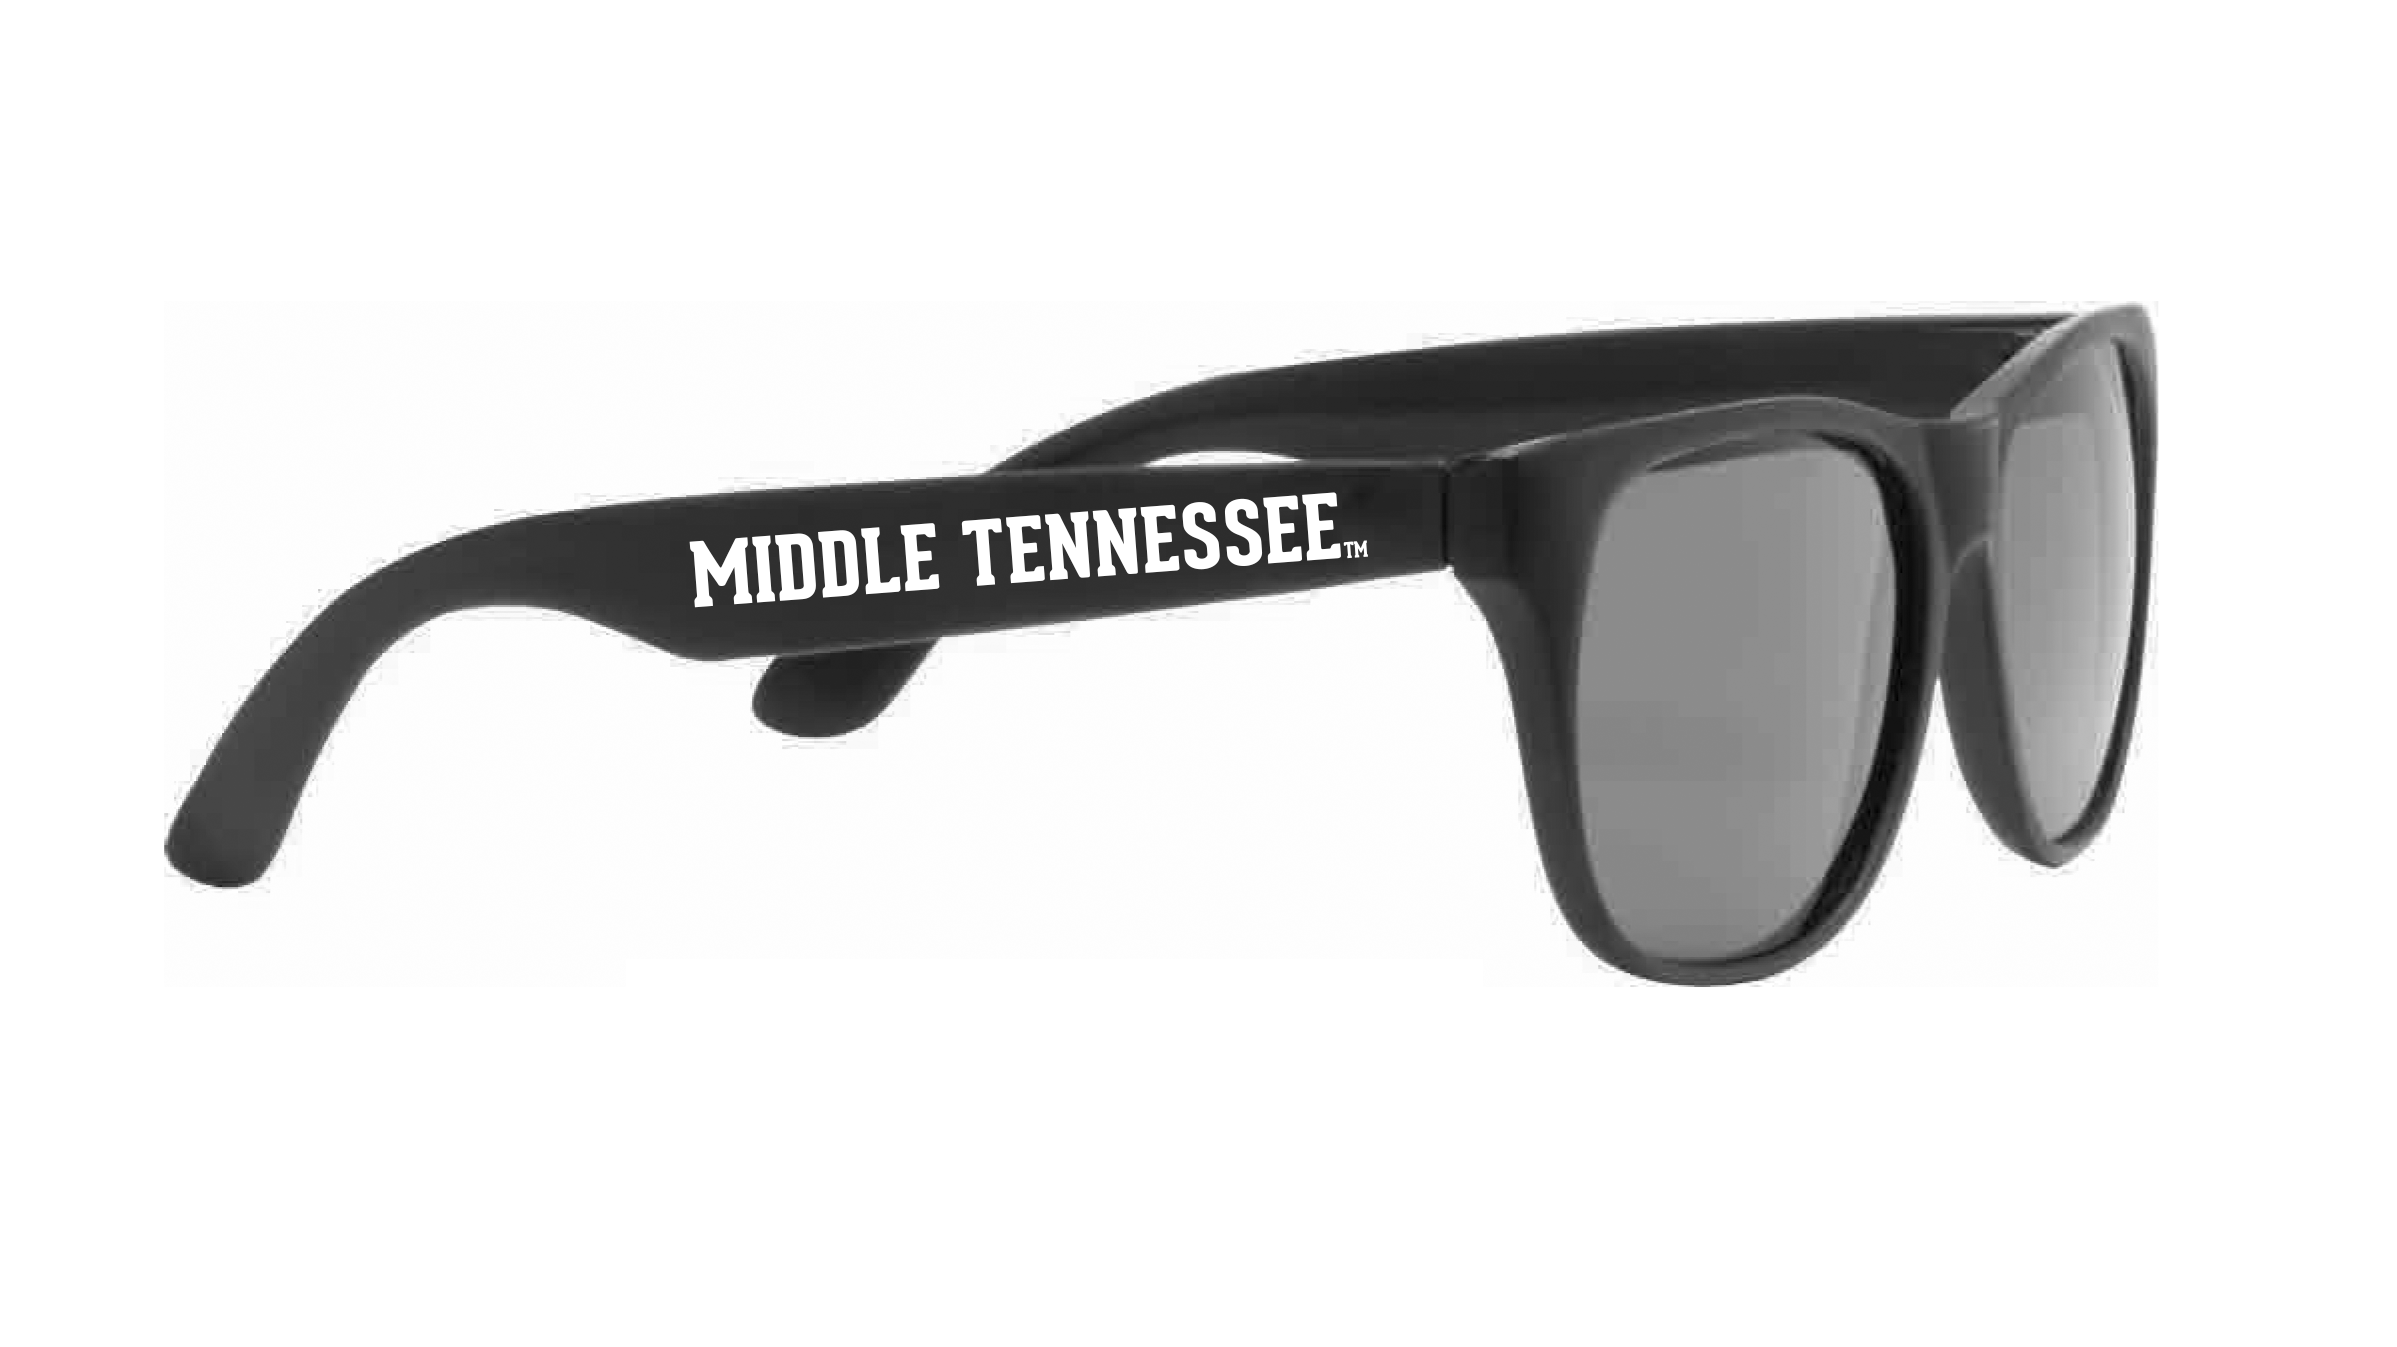 Middle Tennessee Sunglasses